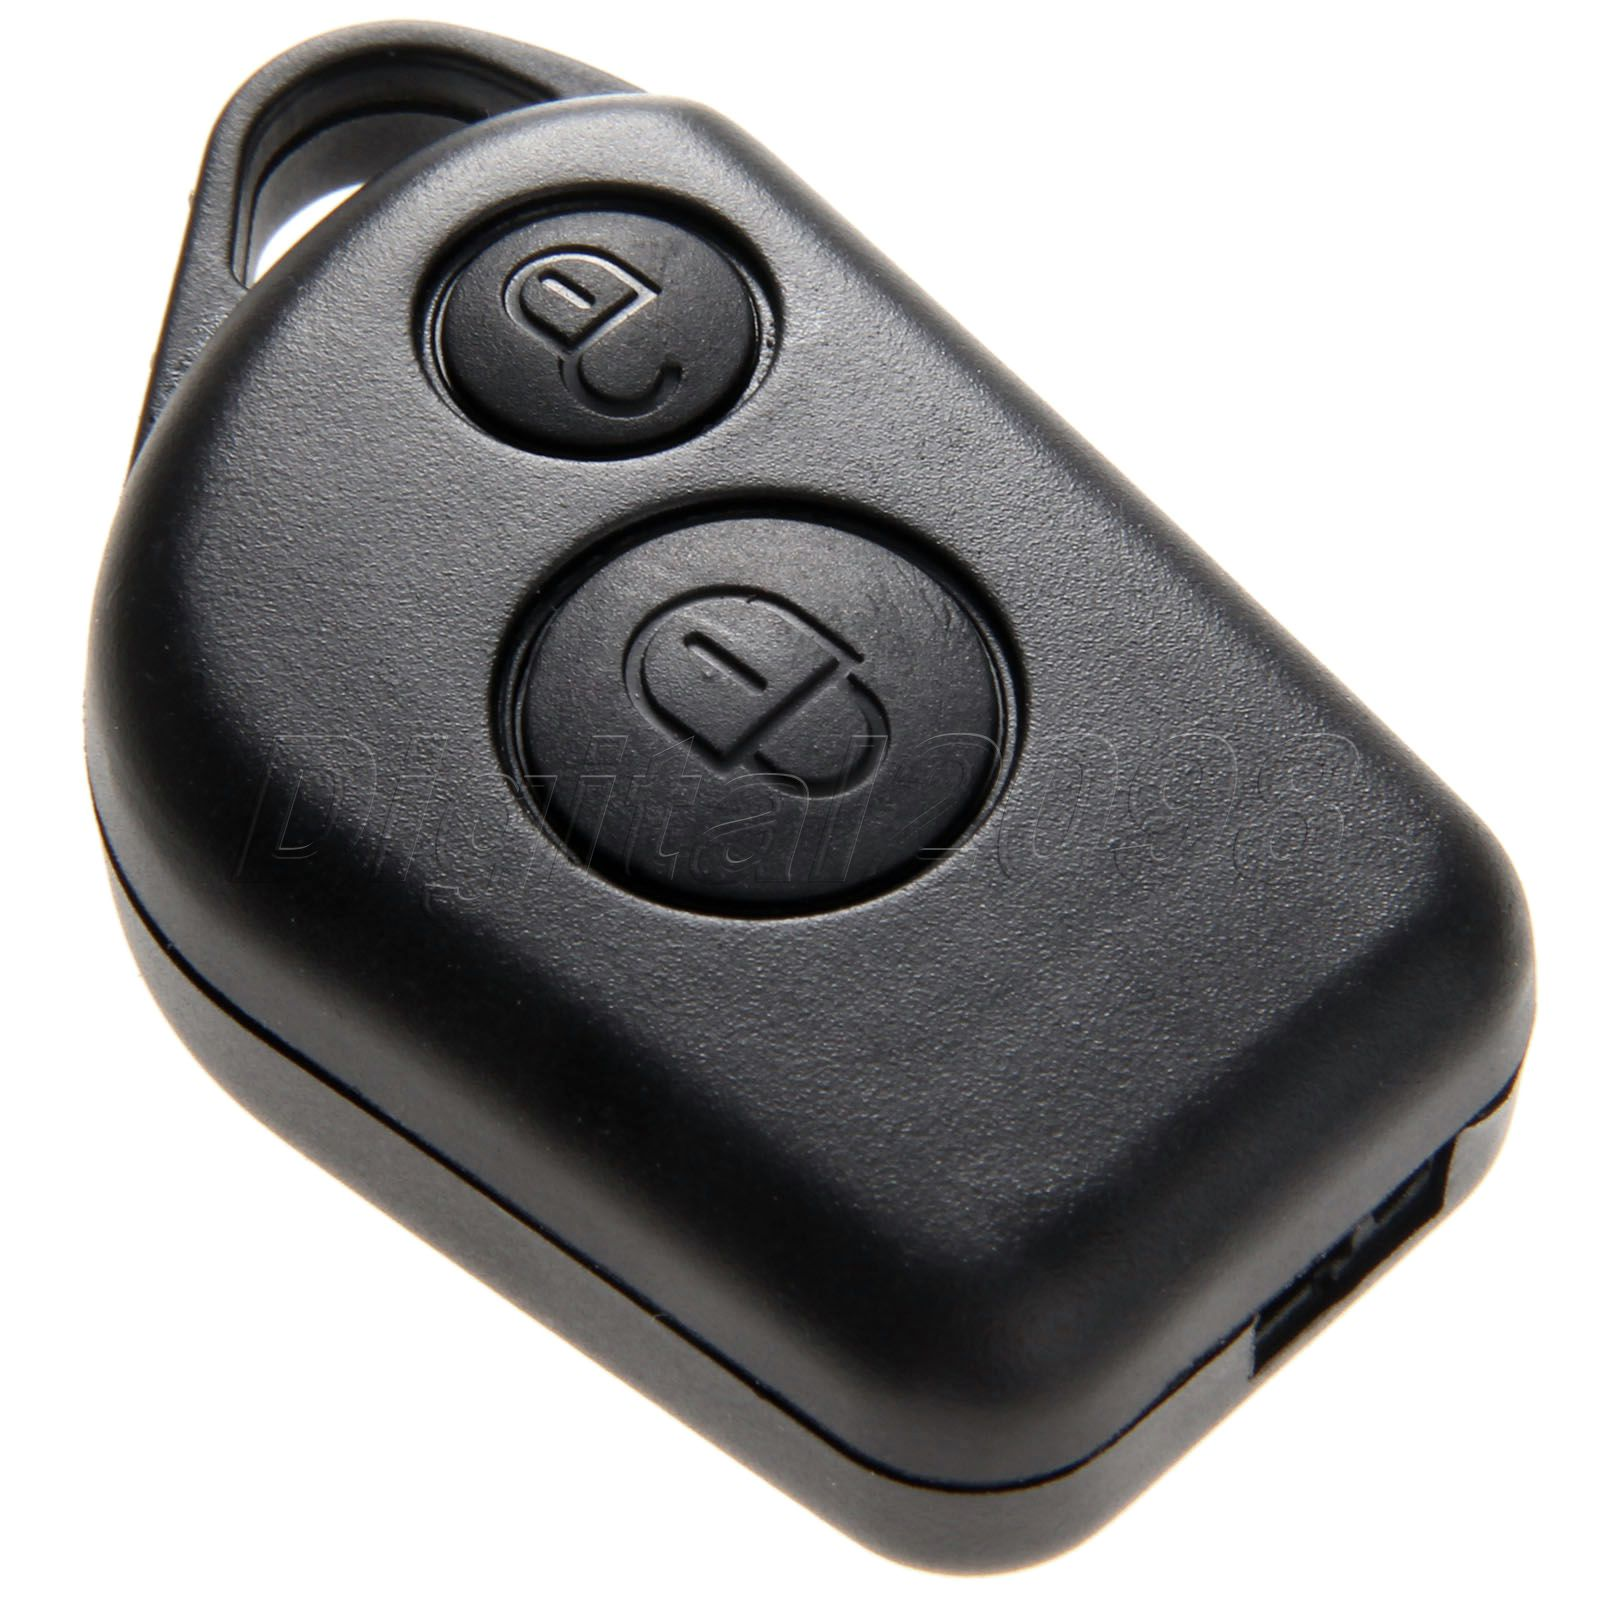 Yetaha 2 Buttons Car <font><b>Key</b></font> Shell Auto <font><b>Remote</b></font> Replacement <font><b>Key</b></font> Case Fob For <font><b>Peugeot</b></font> 306 307 <font><b>406</b></font> CITROEN SAXO BERLINGO XSARA PICASSO image